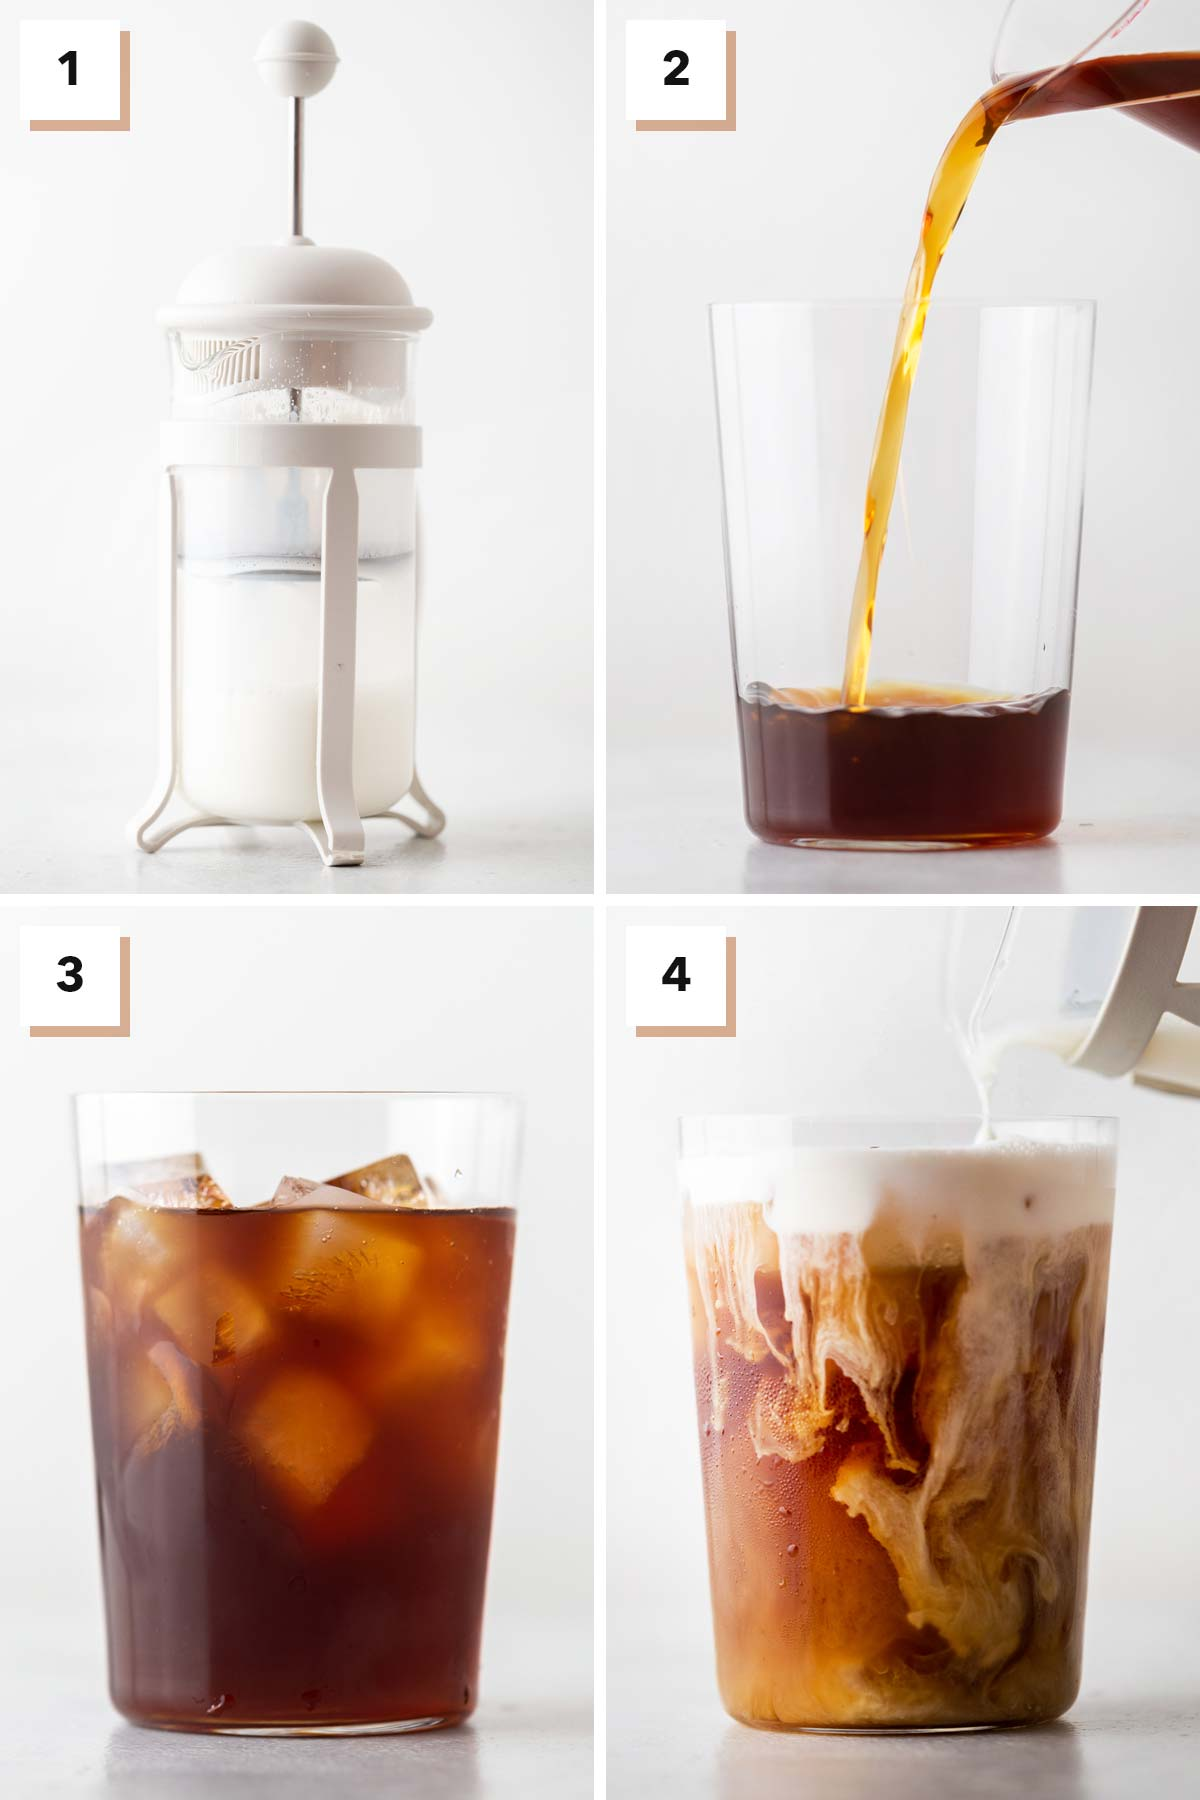 Four photo collage showing steps to make Iced Irish Coffee with cold foam.